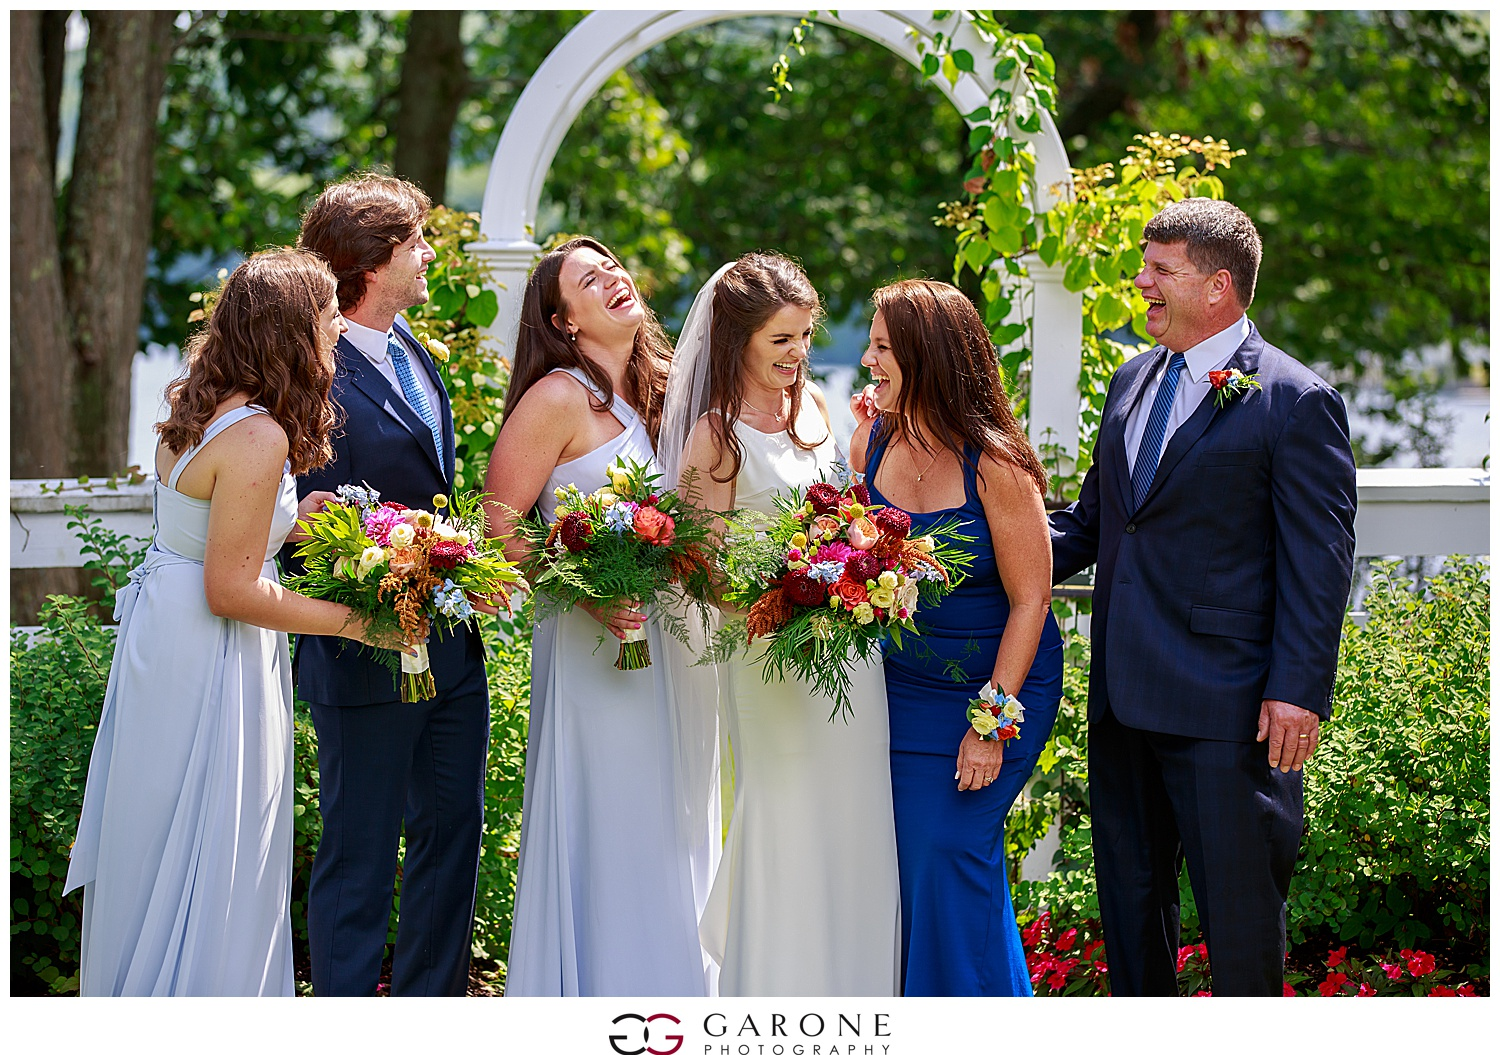 Church_Landing_Garone_Photography_Wedding_Sarah_Patrick_0017.jpg